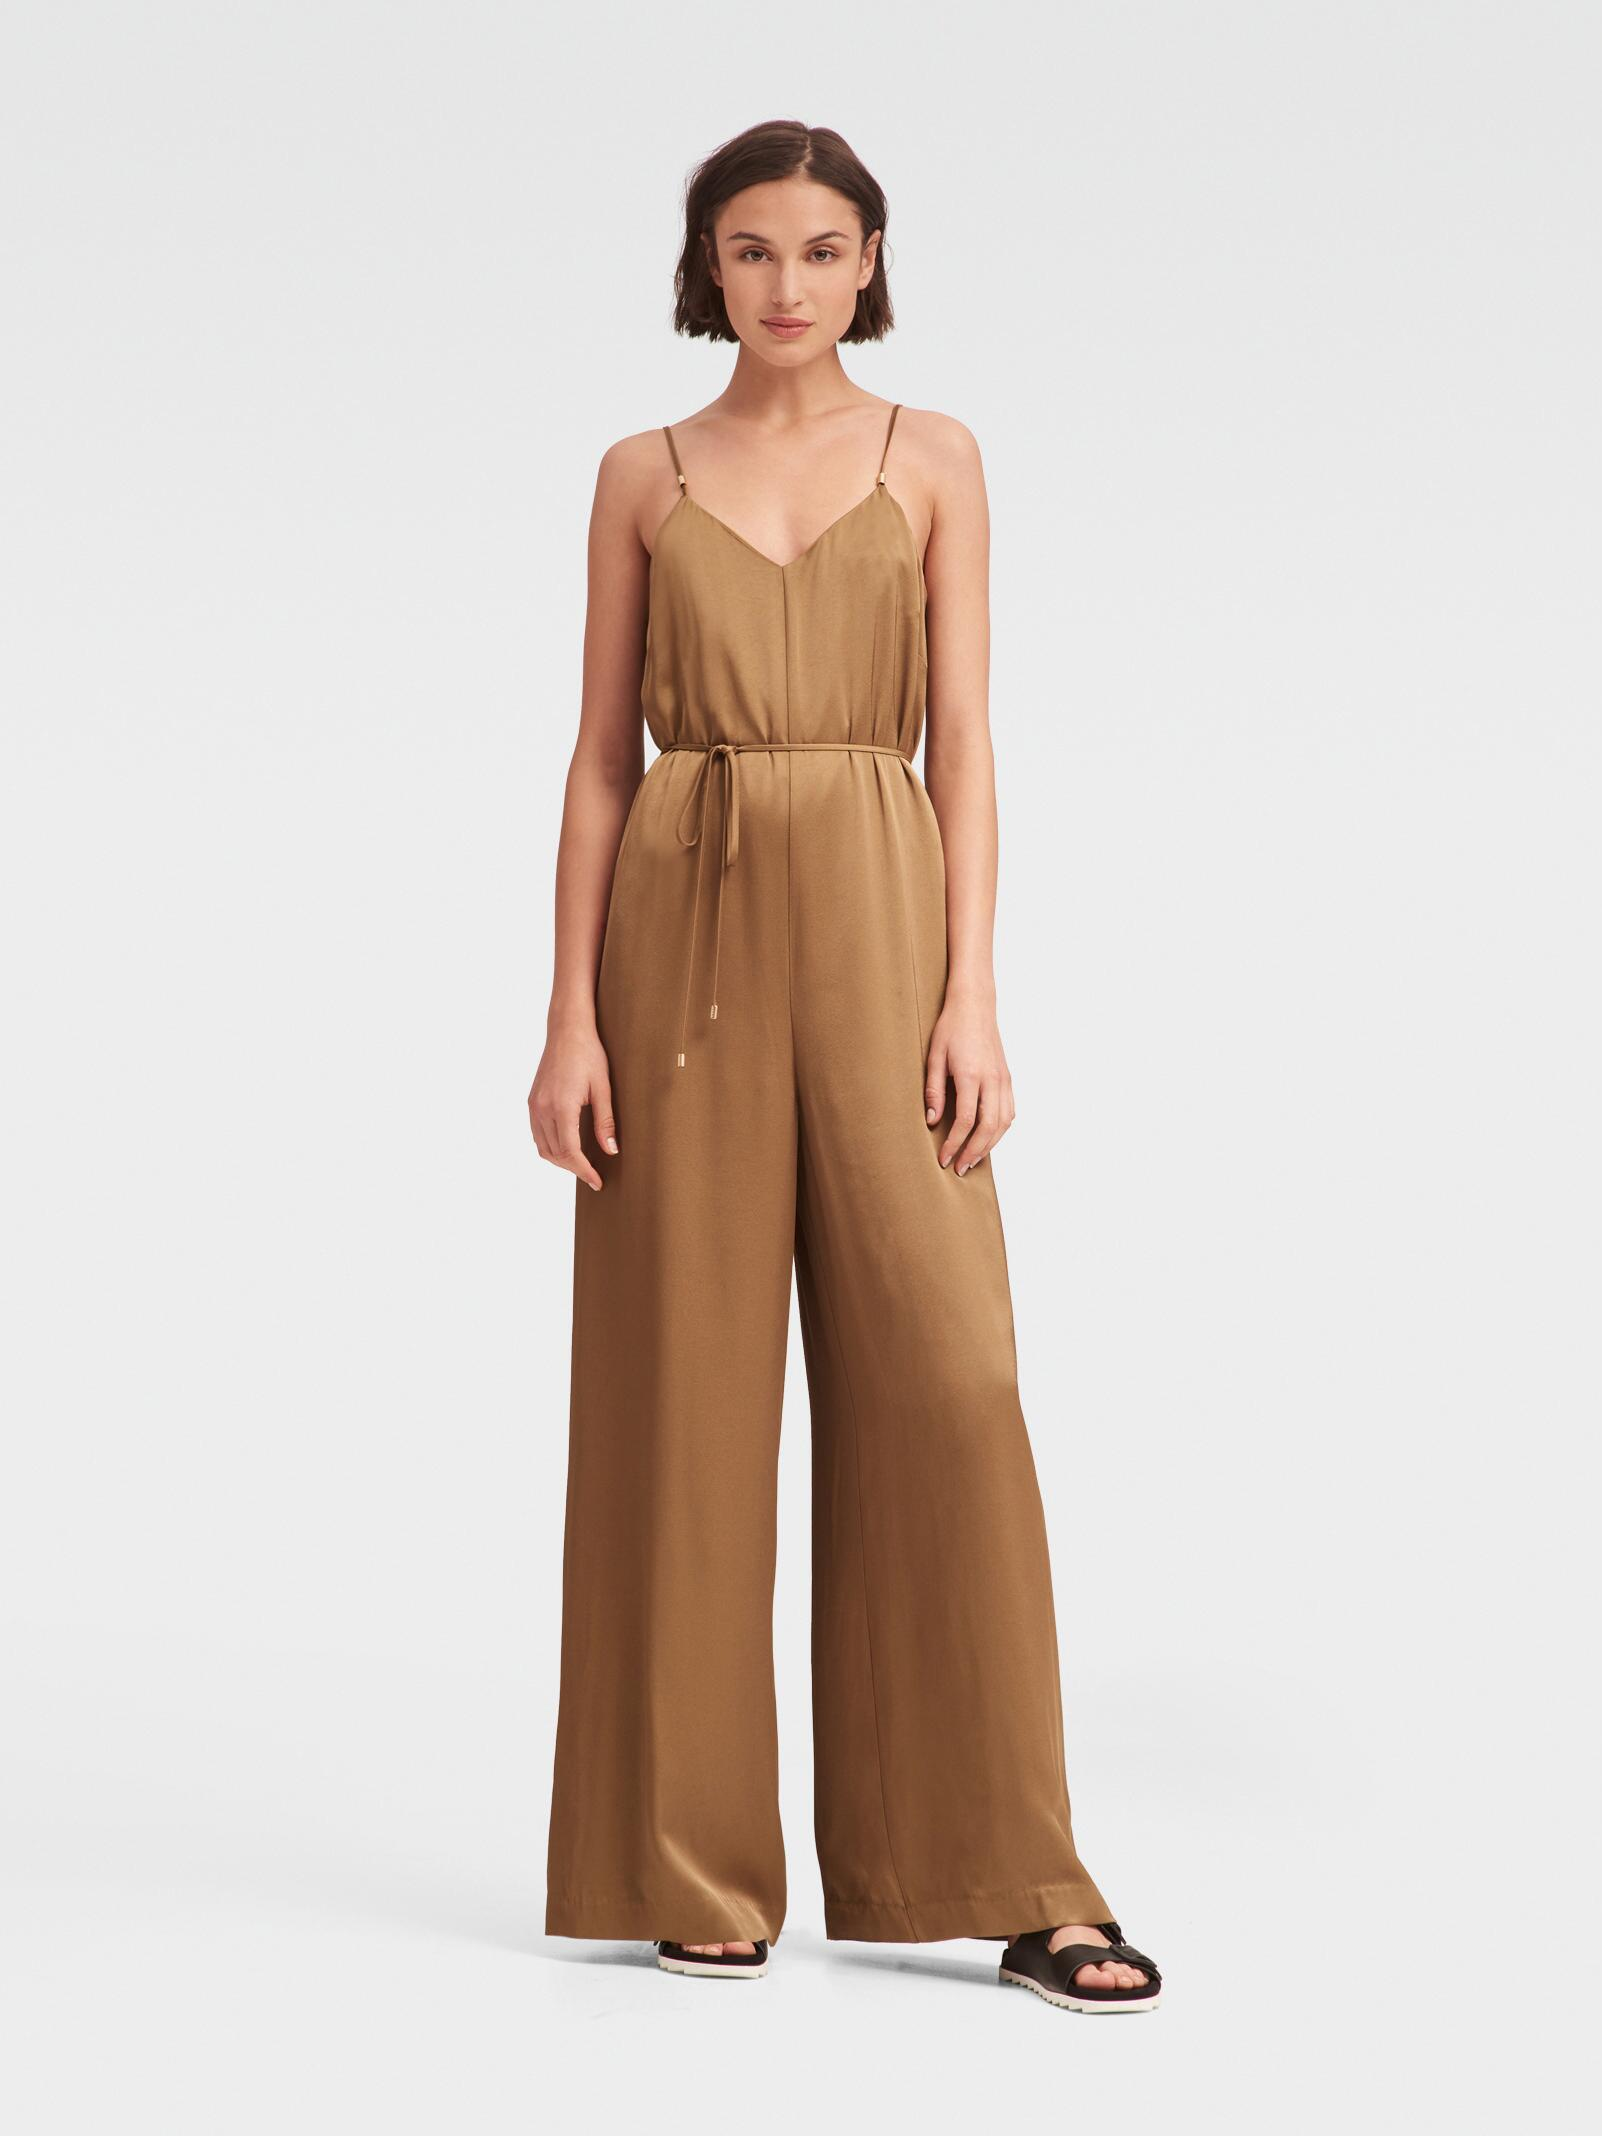 29783beced3b Lyst - DKNY Charmeuse Jumpsuit in Green